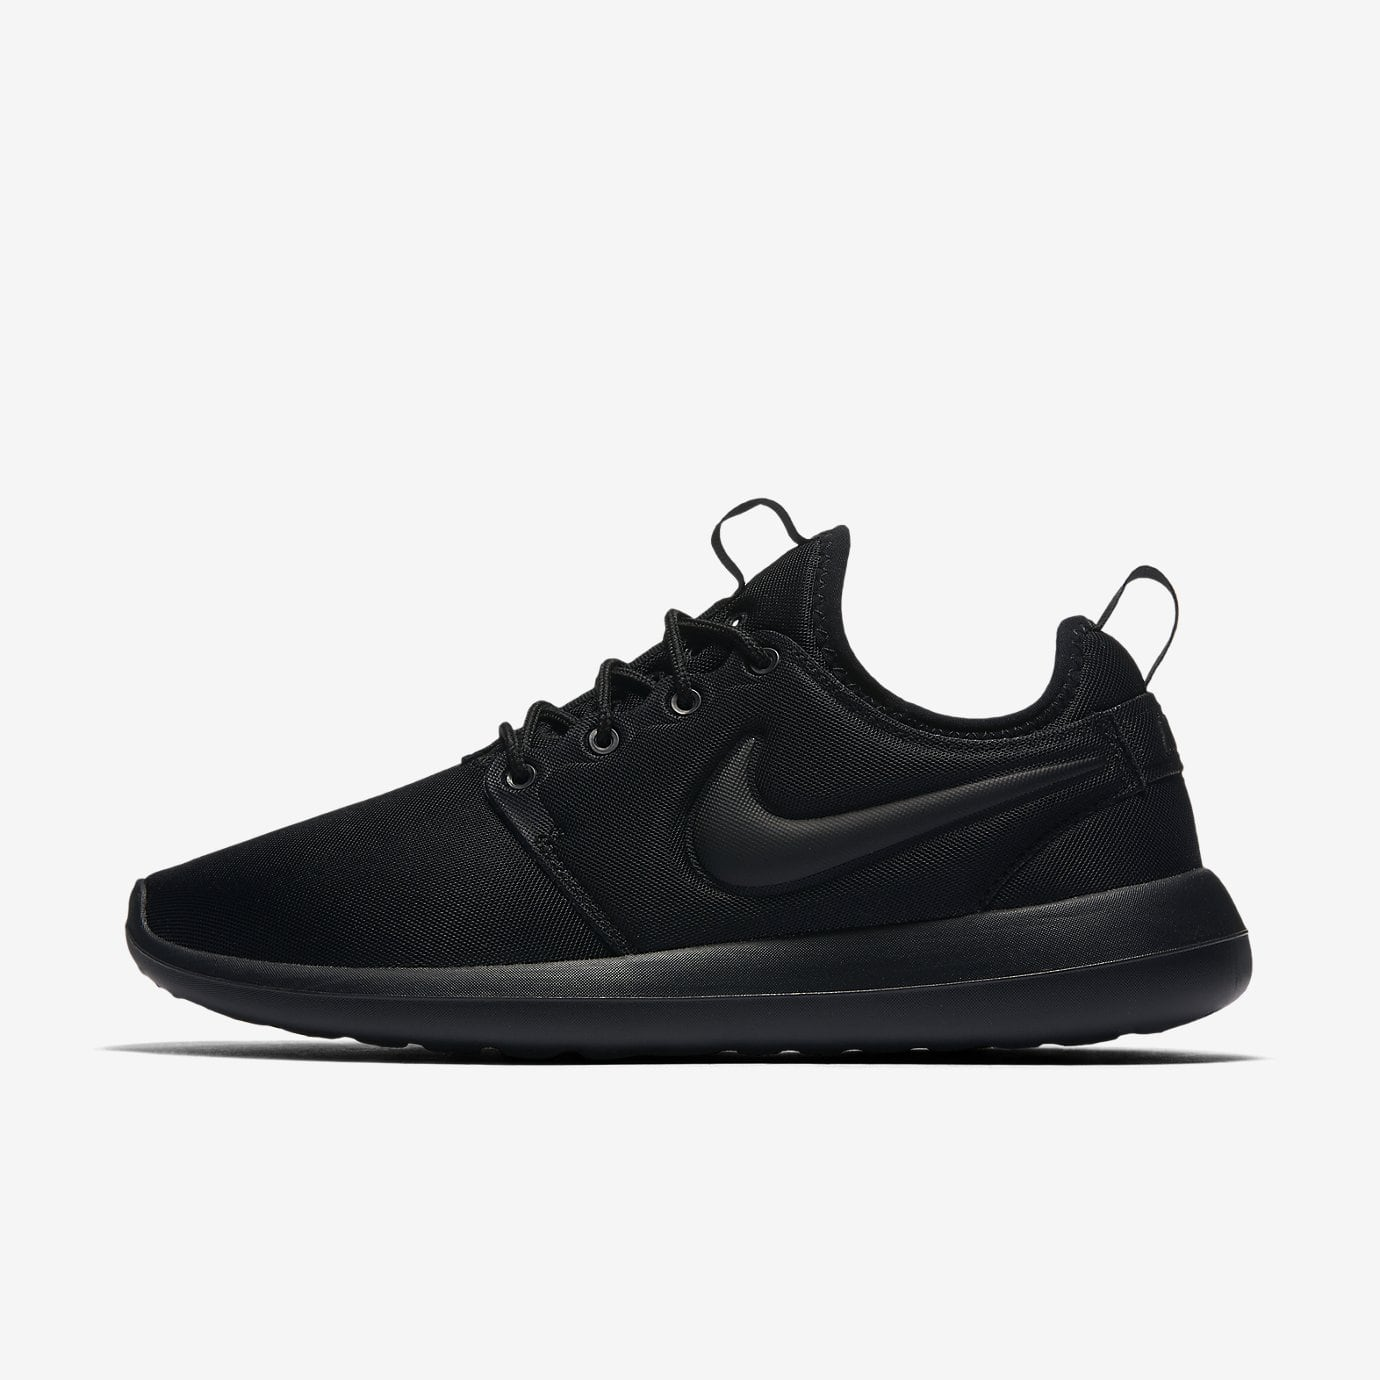 timeless design 8962c 5b401 Women's Nike Roshe Two Shoes (Black) - Slickdeals.net